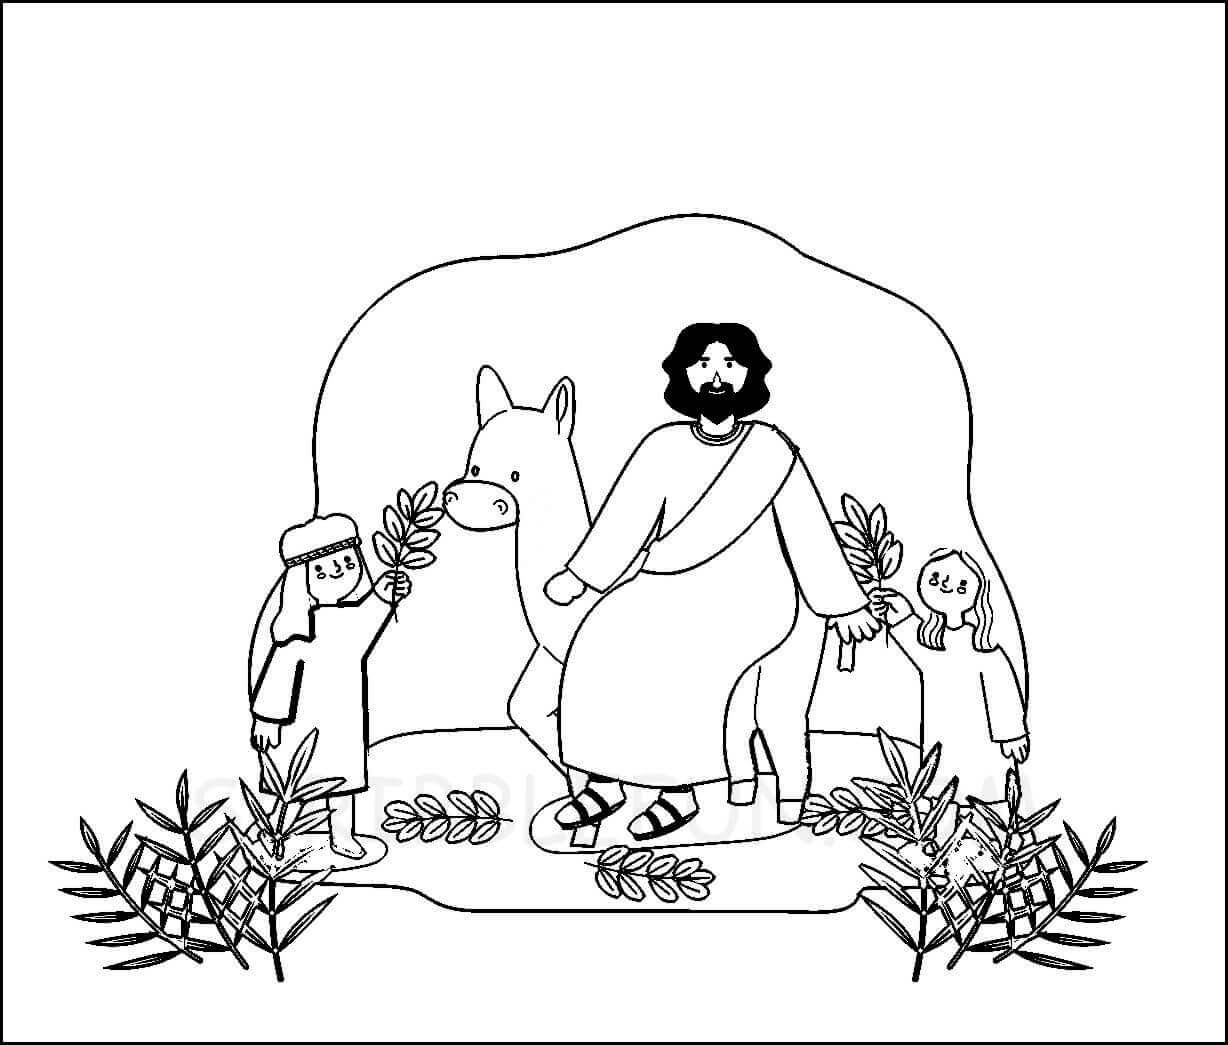 Palm Day coloring pages